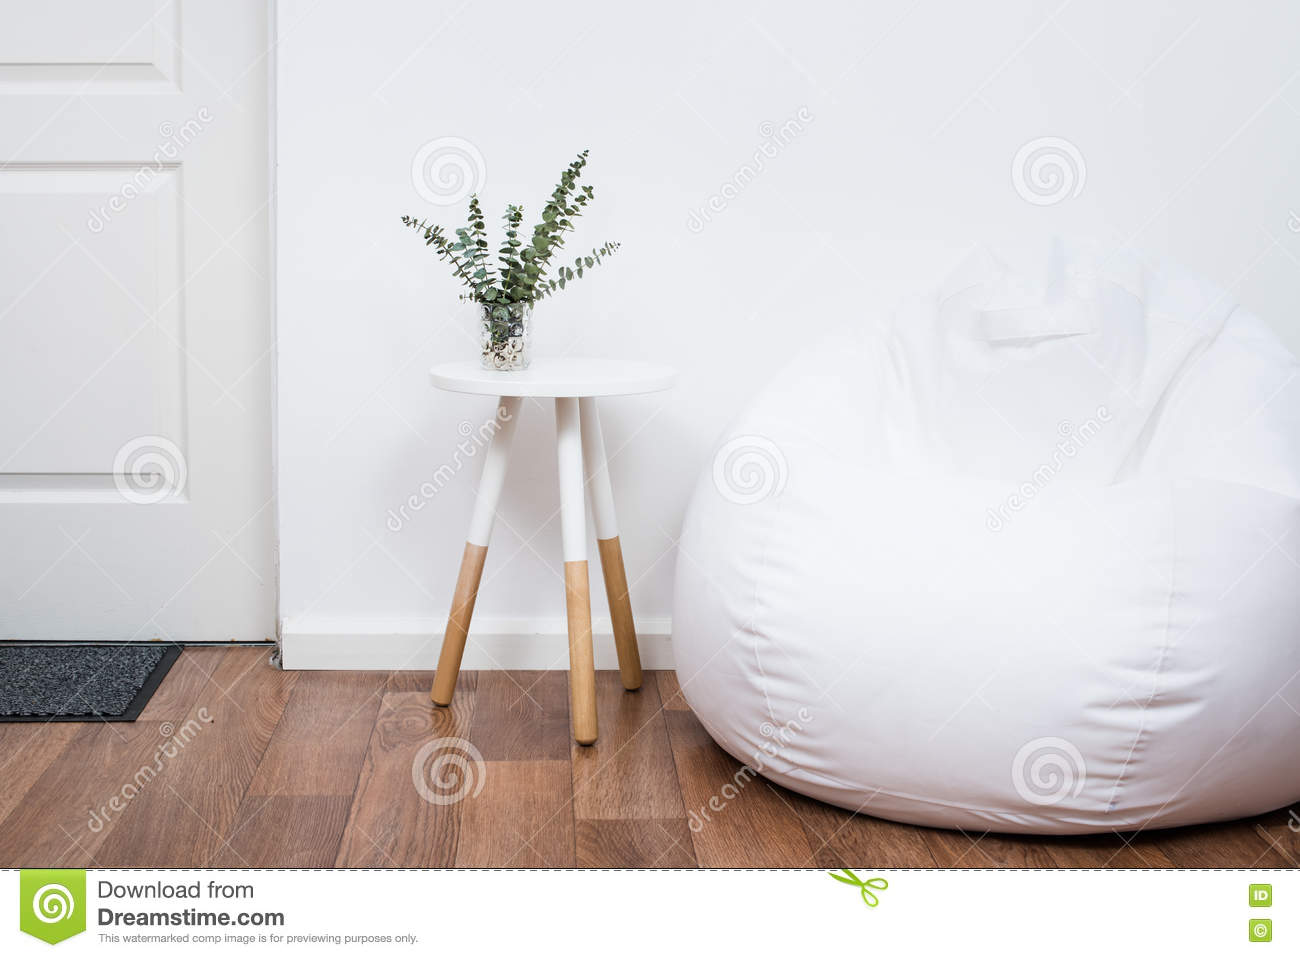 Scandinavian Home Interior Decoration Simple Decor Objects And Bean Bag Chair Minimalist White Room